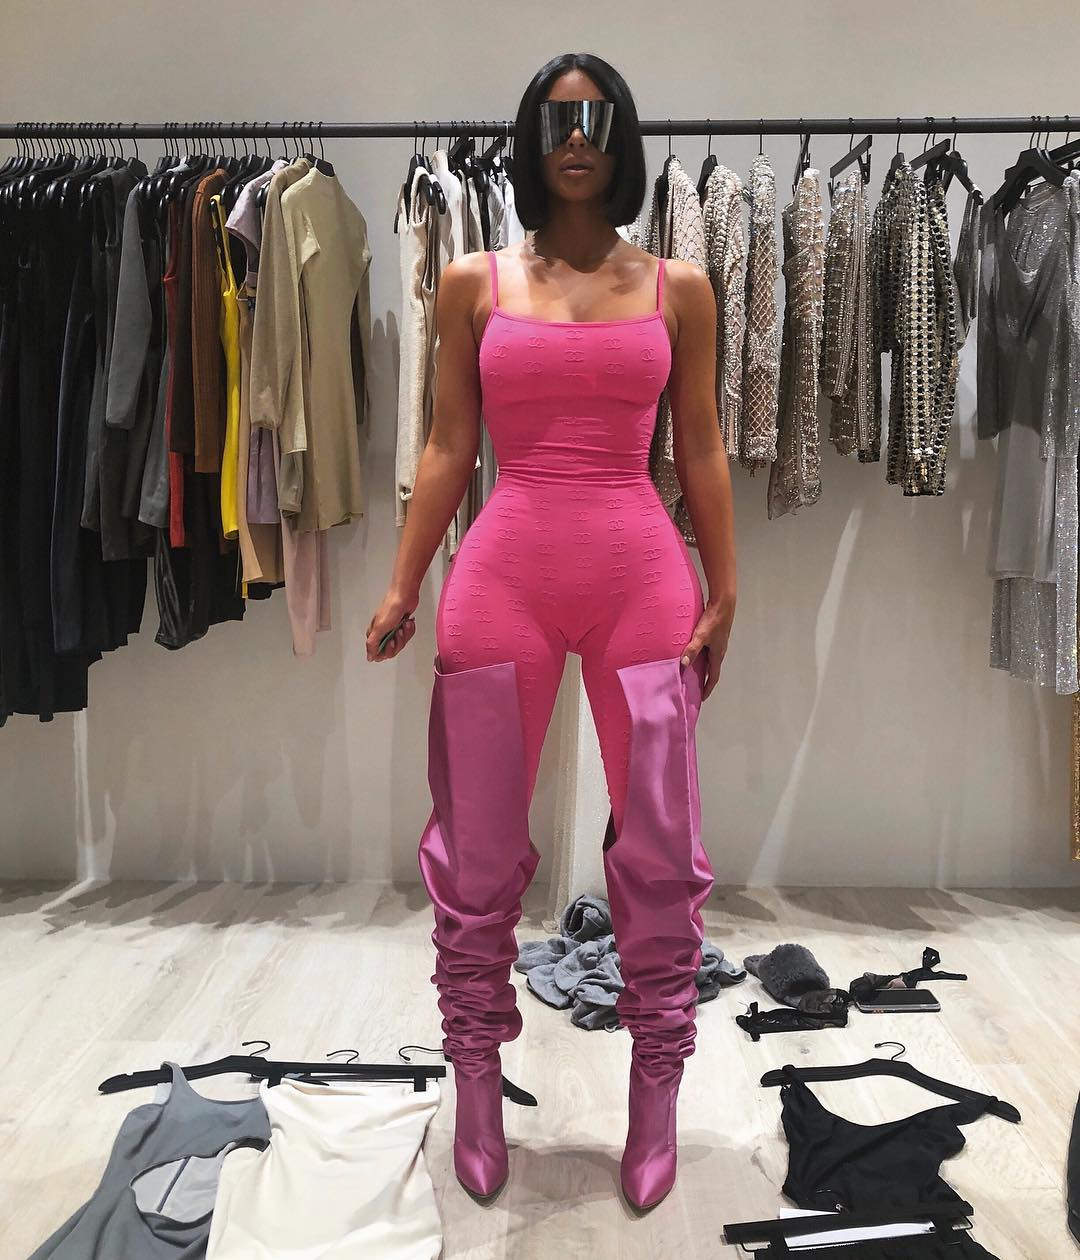 Kim Kardashian displays her figure in pink bodysuit and matching thigh-high boots 1